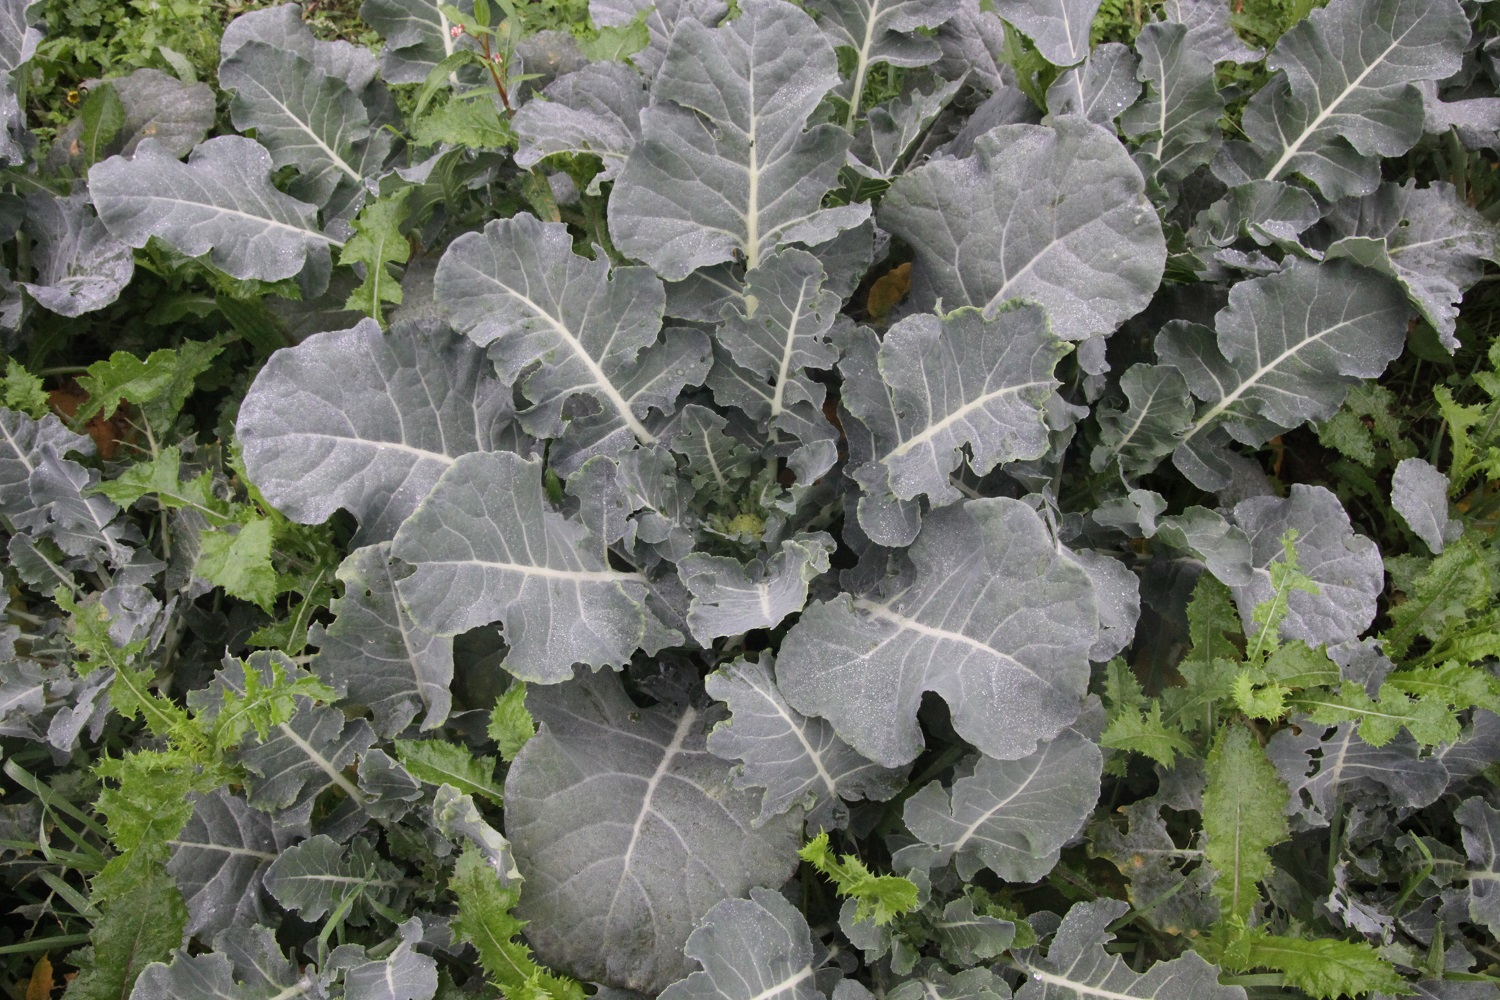 Picture of Calabrese/Broccoli